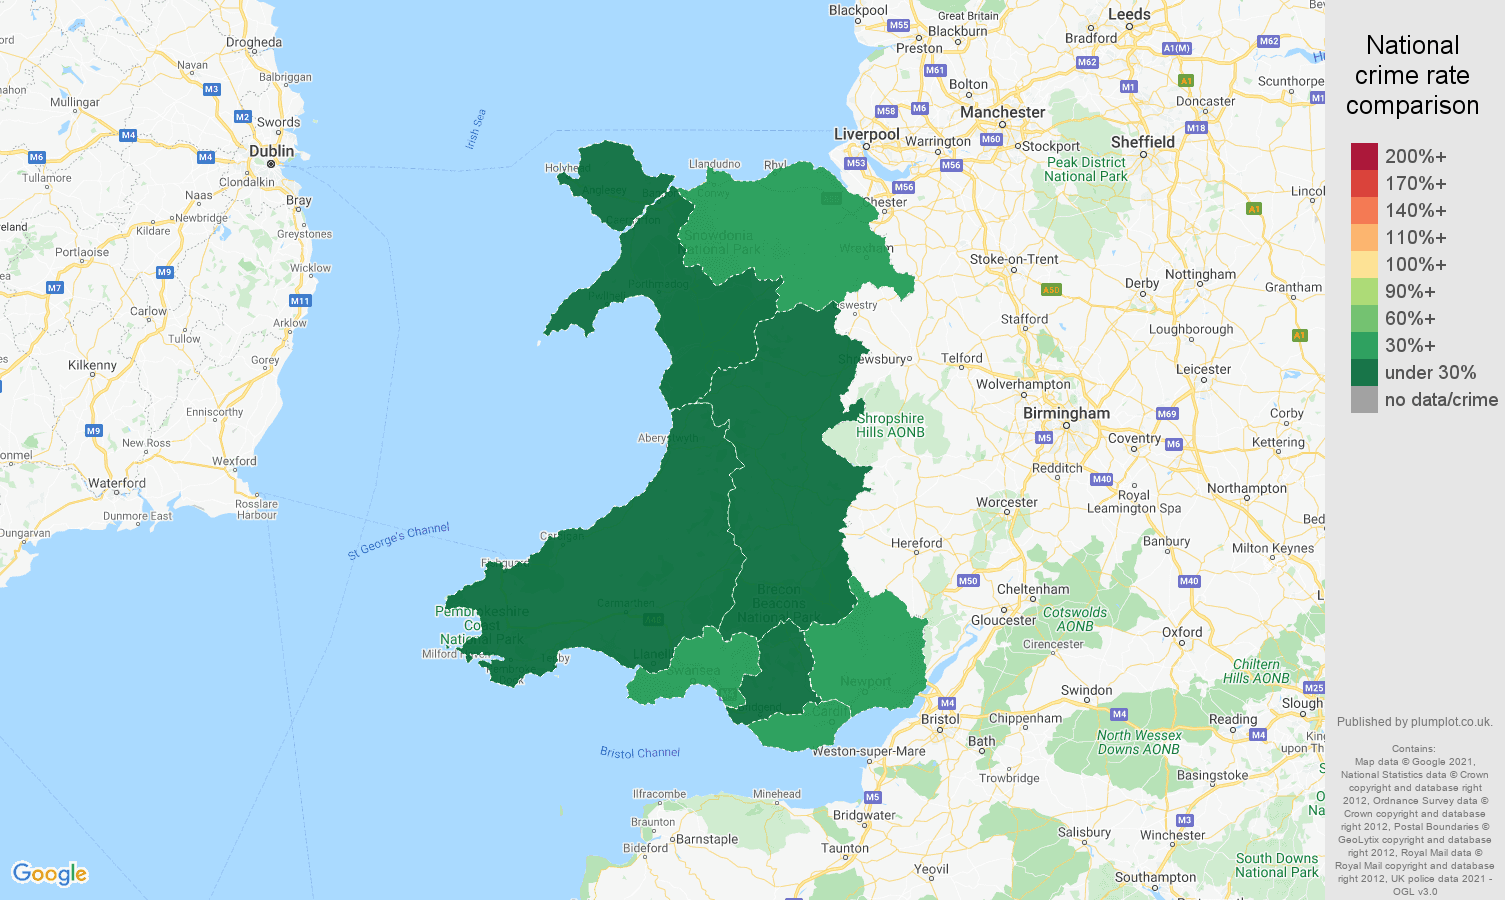 Wales robbery crime rate comparison map